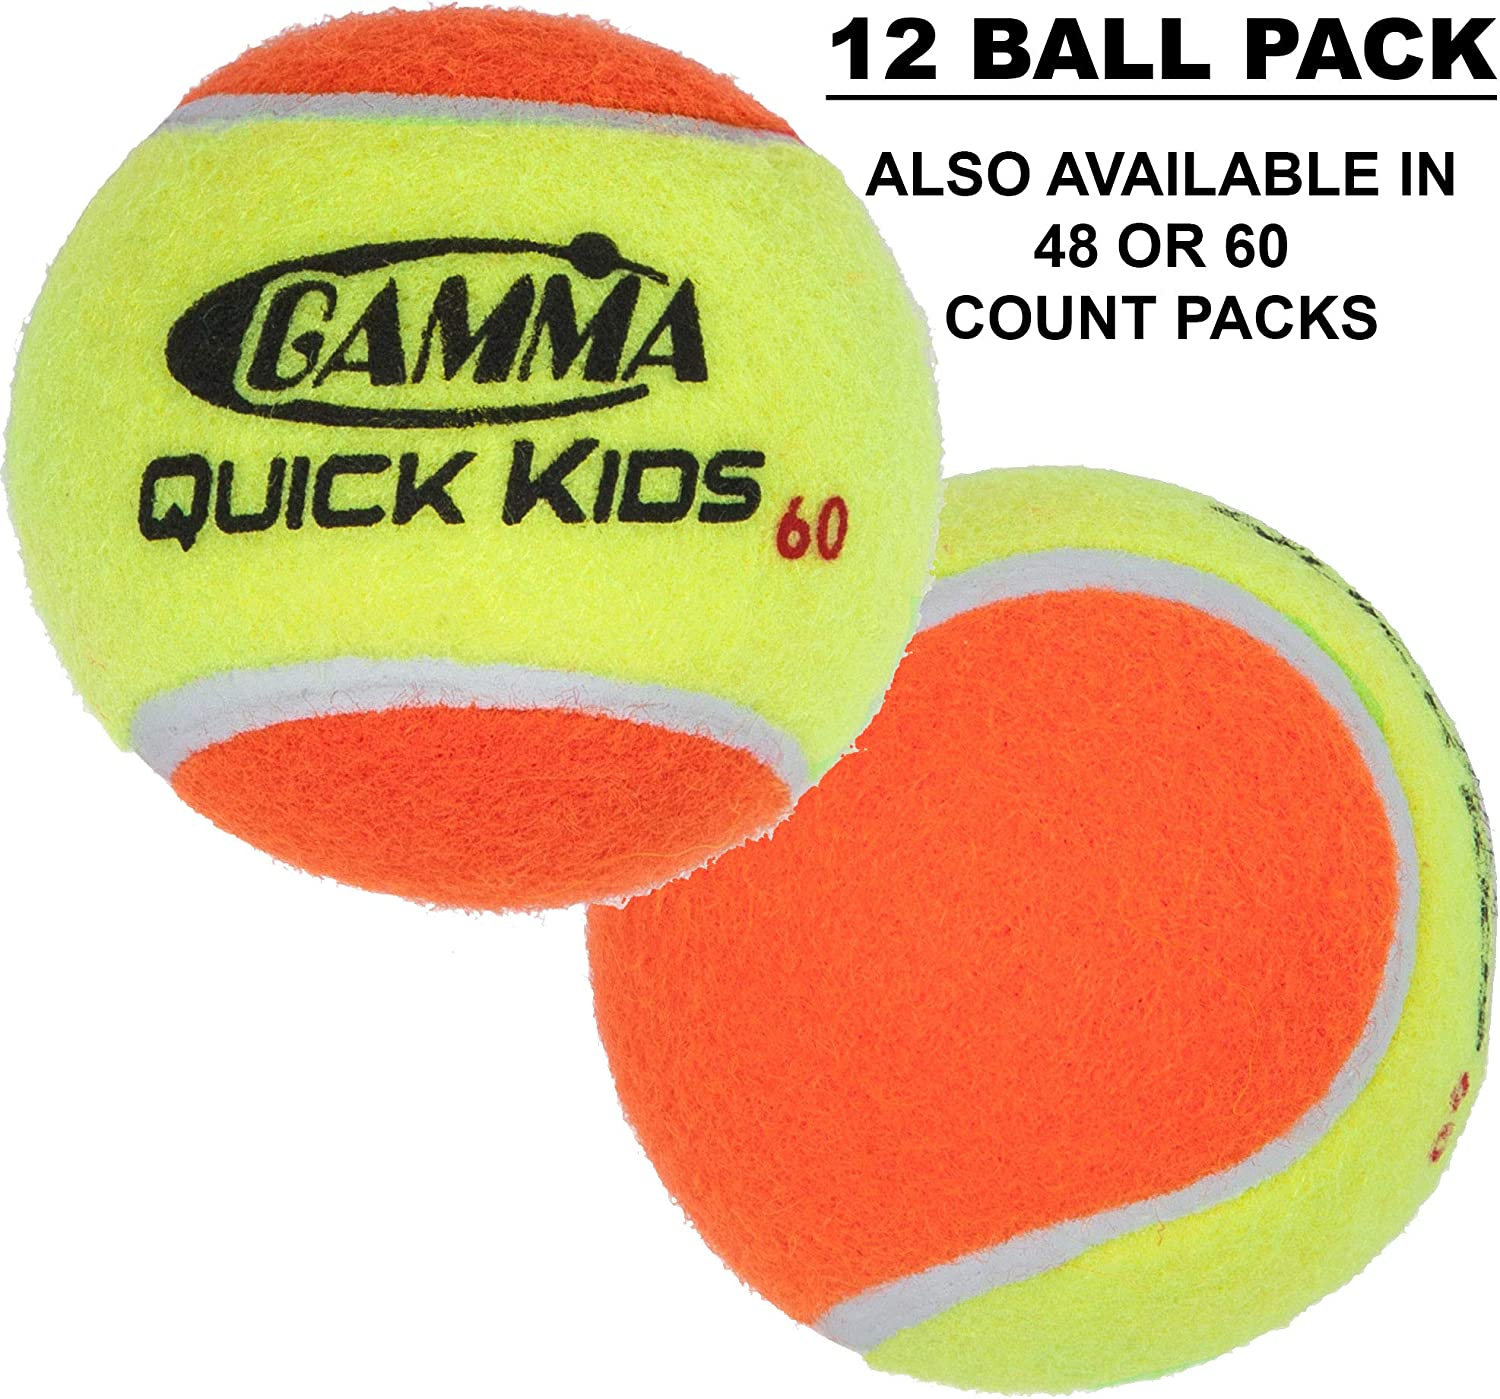 Gamma Quick Kids (Transition) Practice Tennis Balls: Red 36, Orange 60, or Green 78 Dot (25%-50% Slower Ball Speed) - 12, 36, 48, 60 Pack Sizes